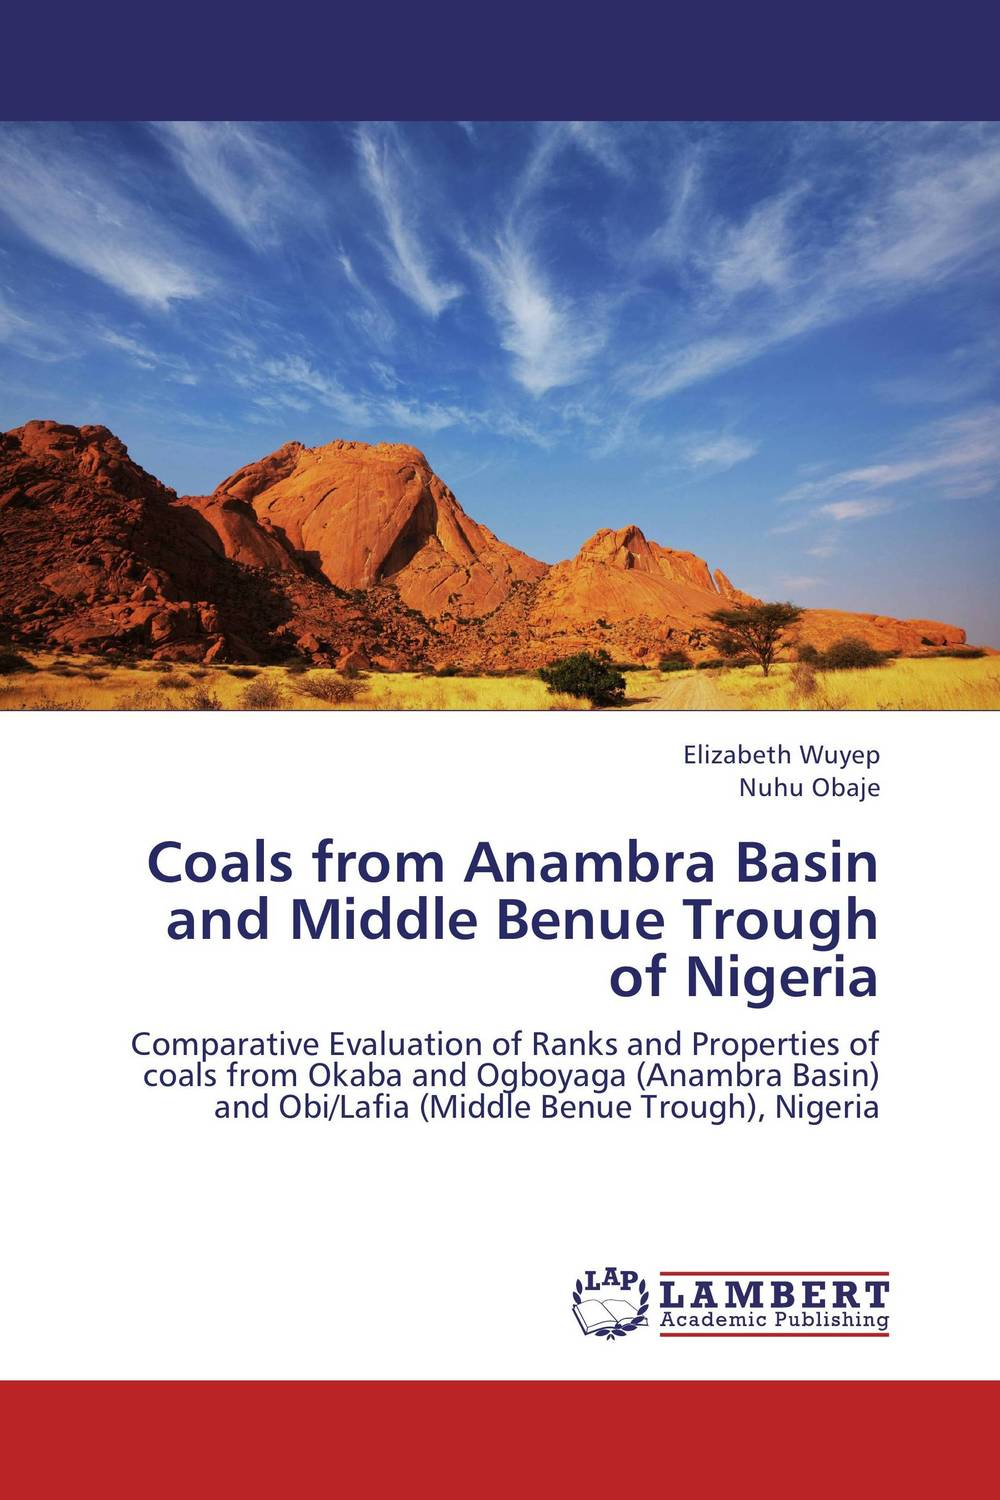 Coals from Anambra Basin and Middle Benue Trough of Nigeria pastoralism and agriculture pennar basin india